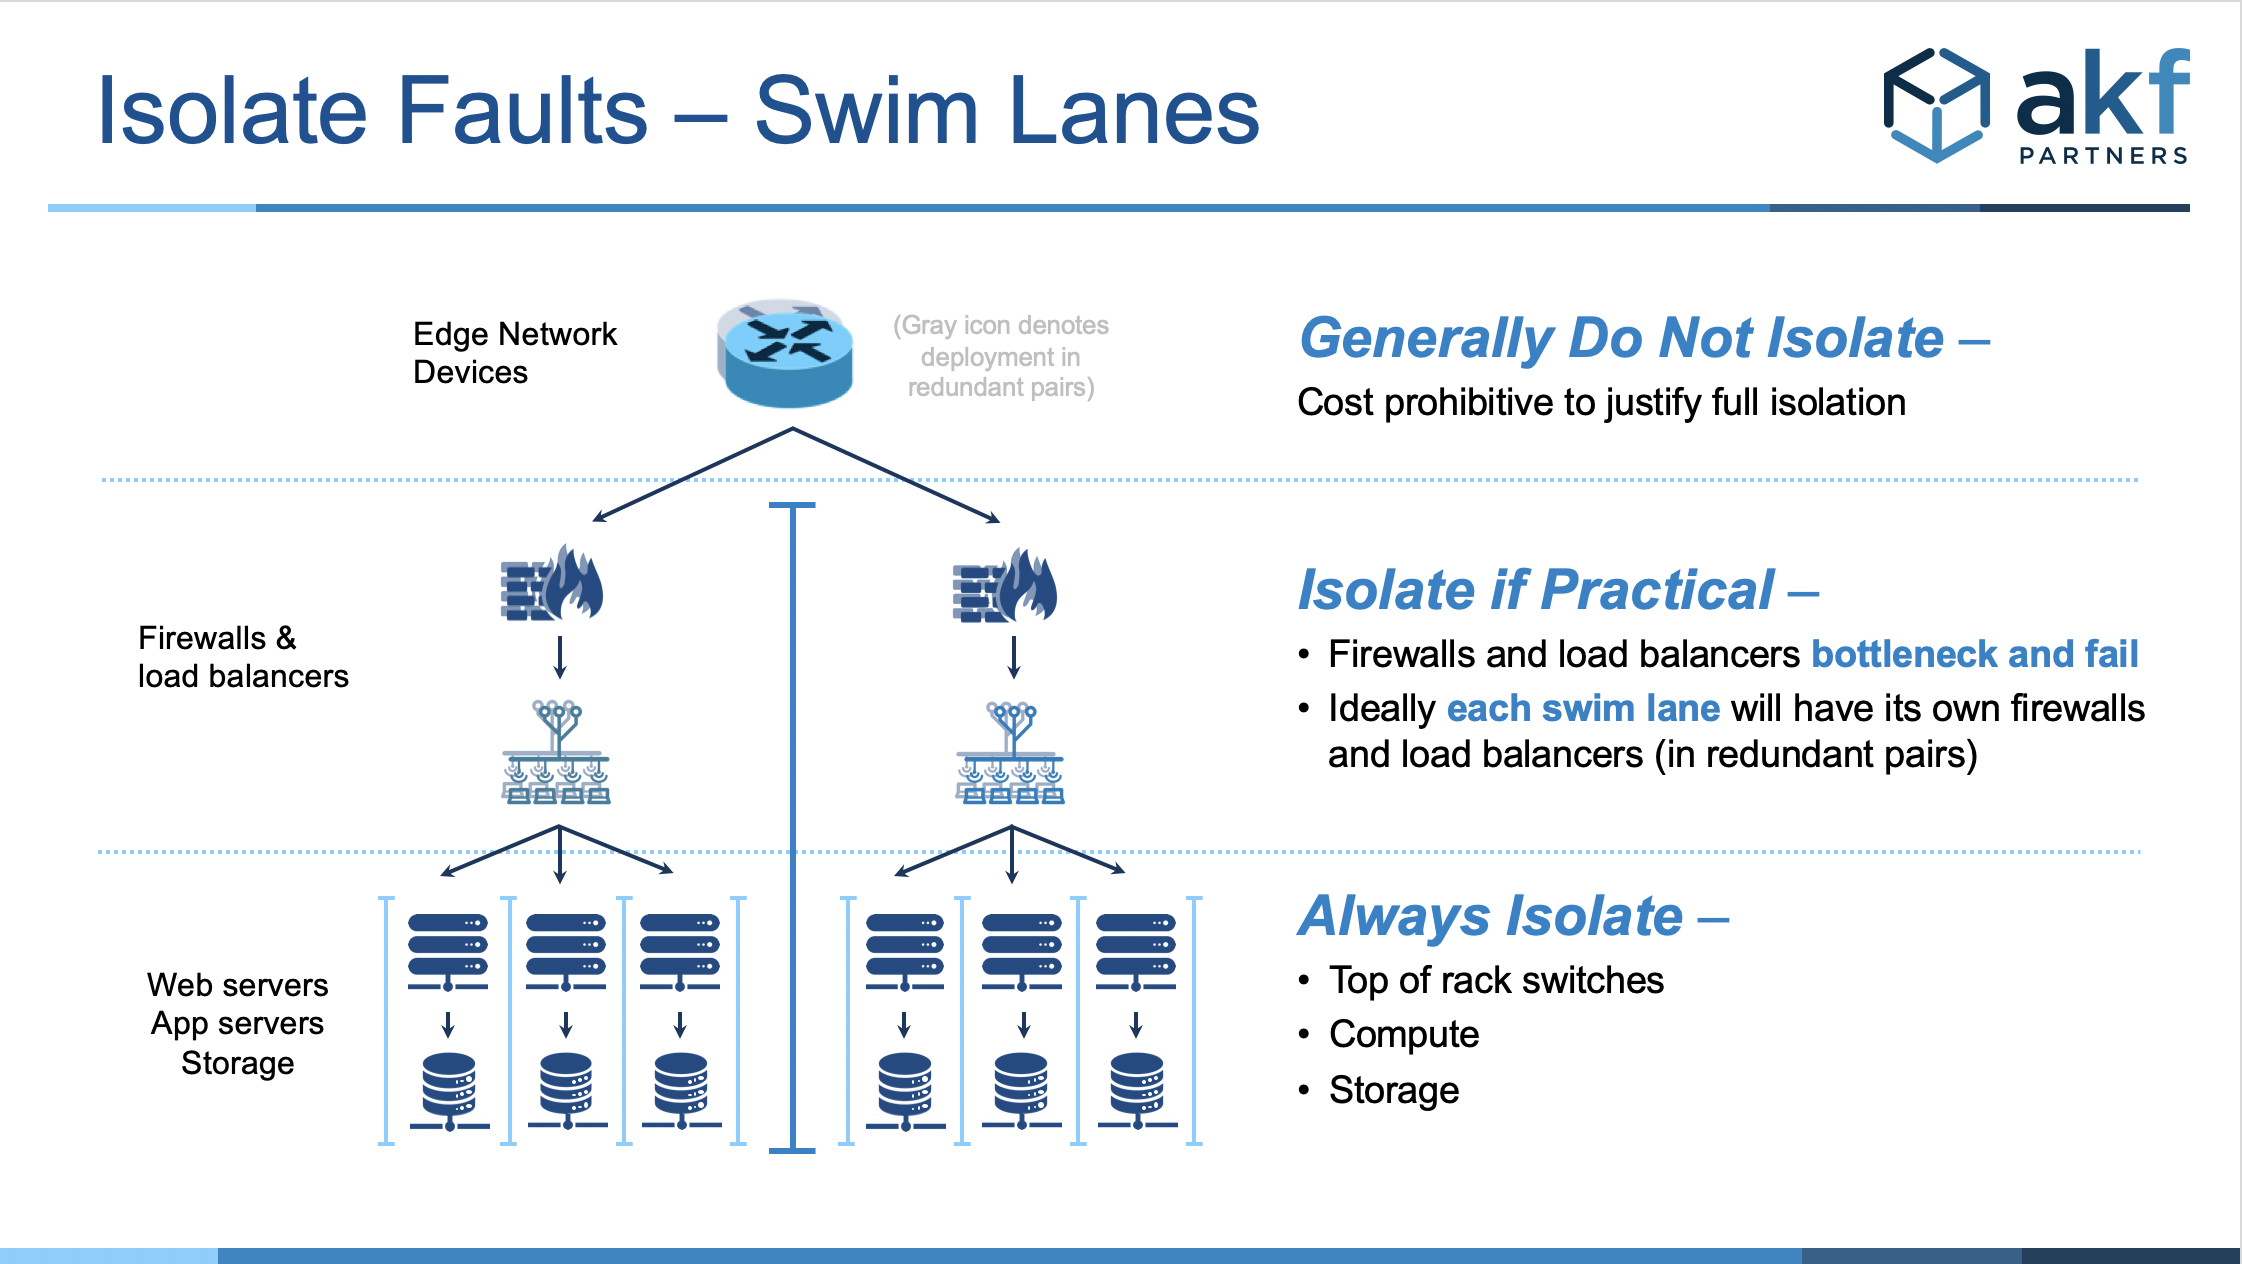 Diagram of infrastructure showing how to establish swim lane fault isolation zones